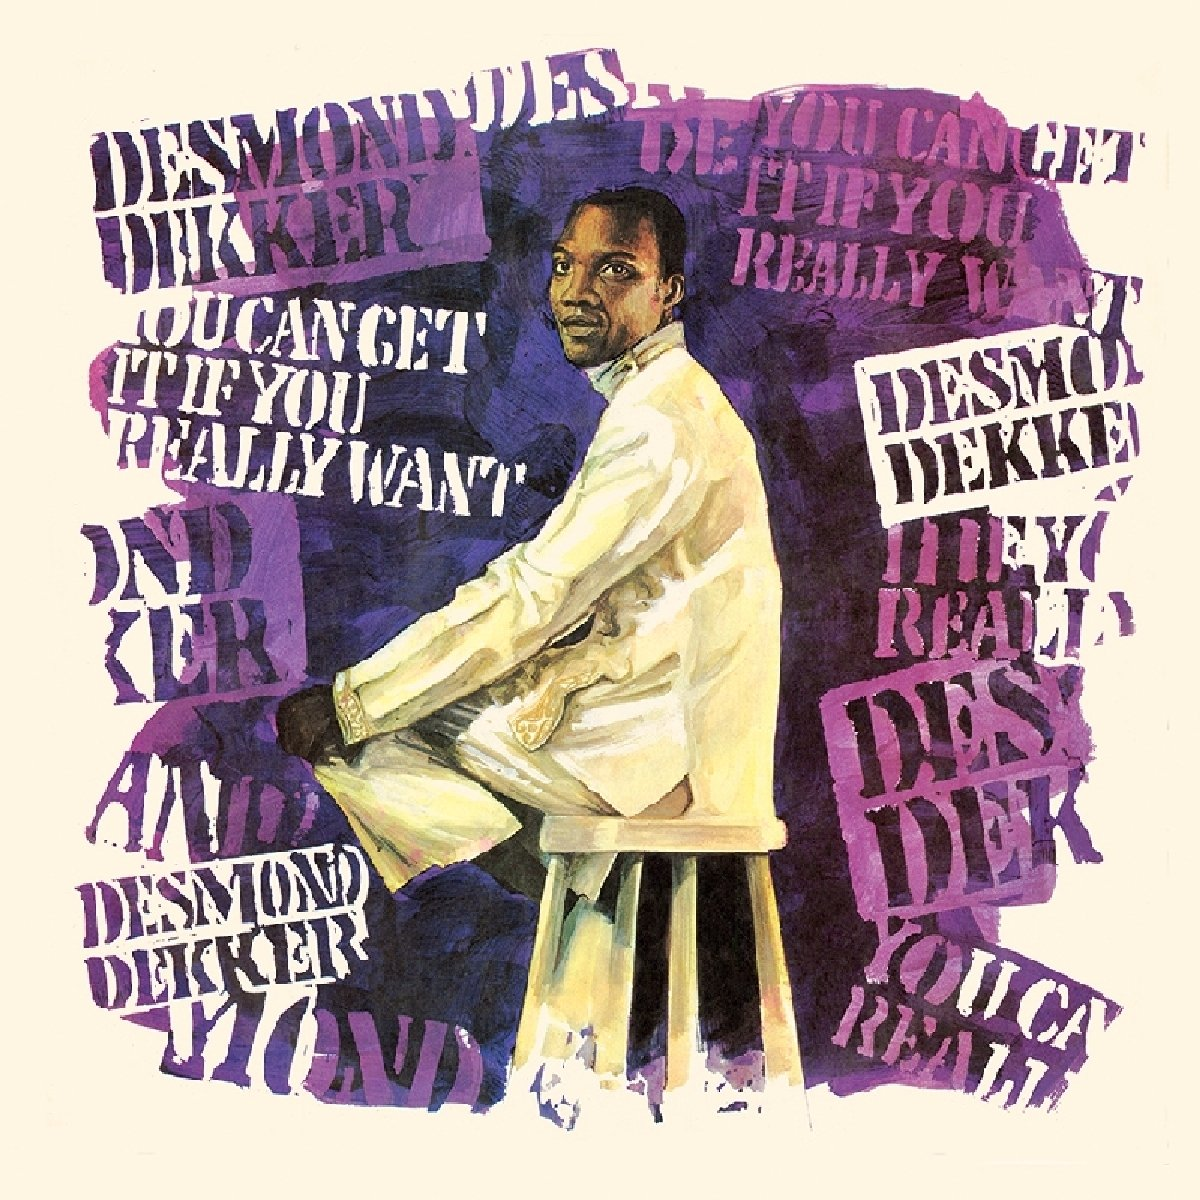 Desmond Dekker - You Can Get It If You Really Want (Limited Edition, Colored Vinyl, Black, Blue)